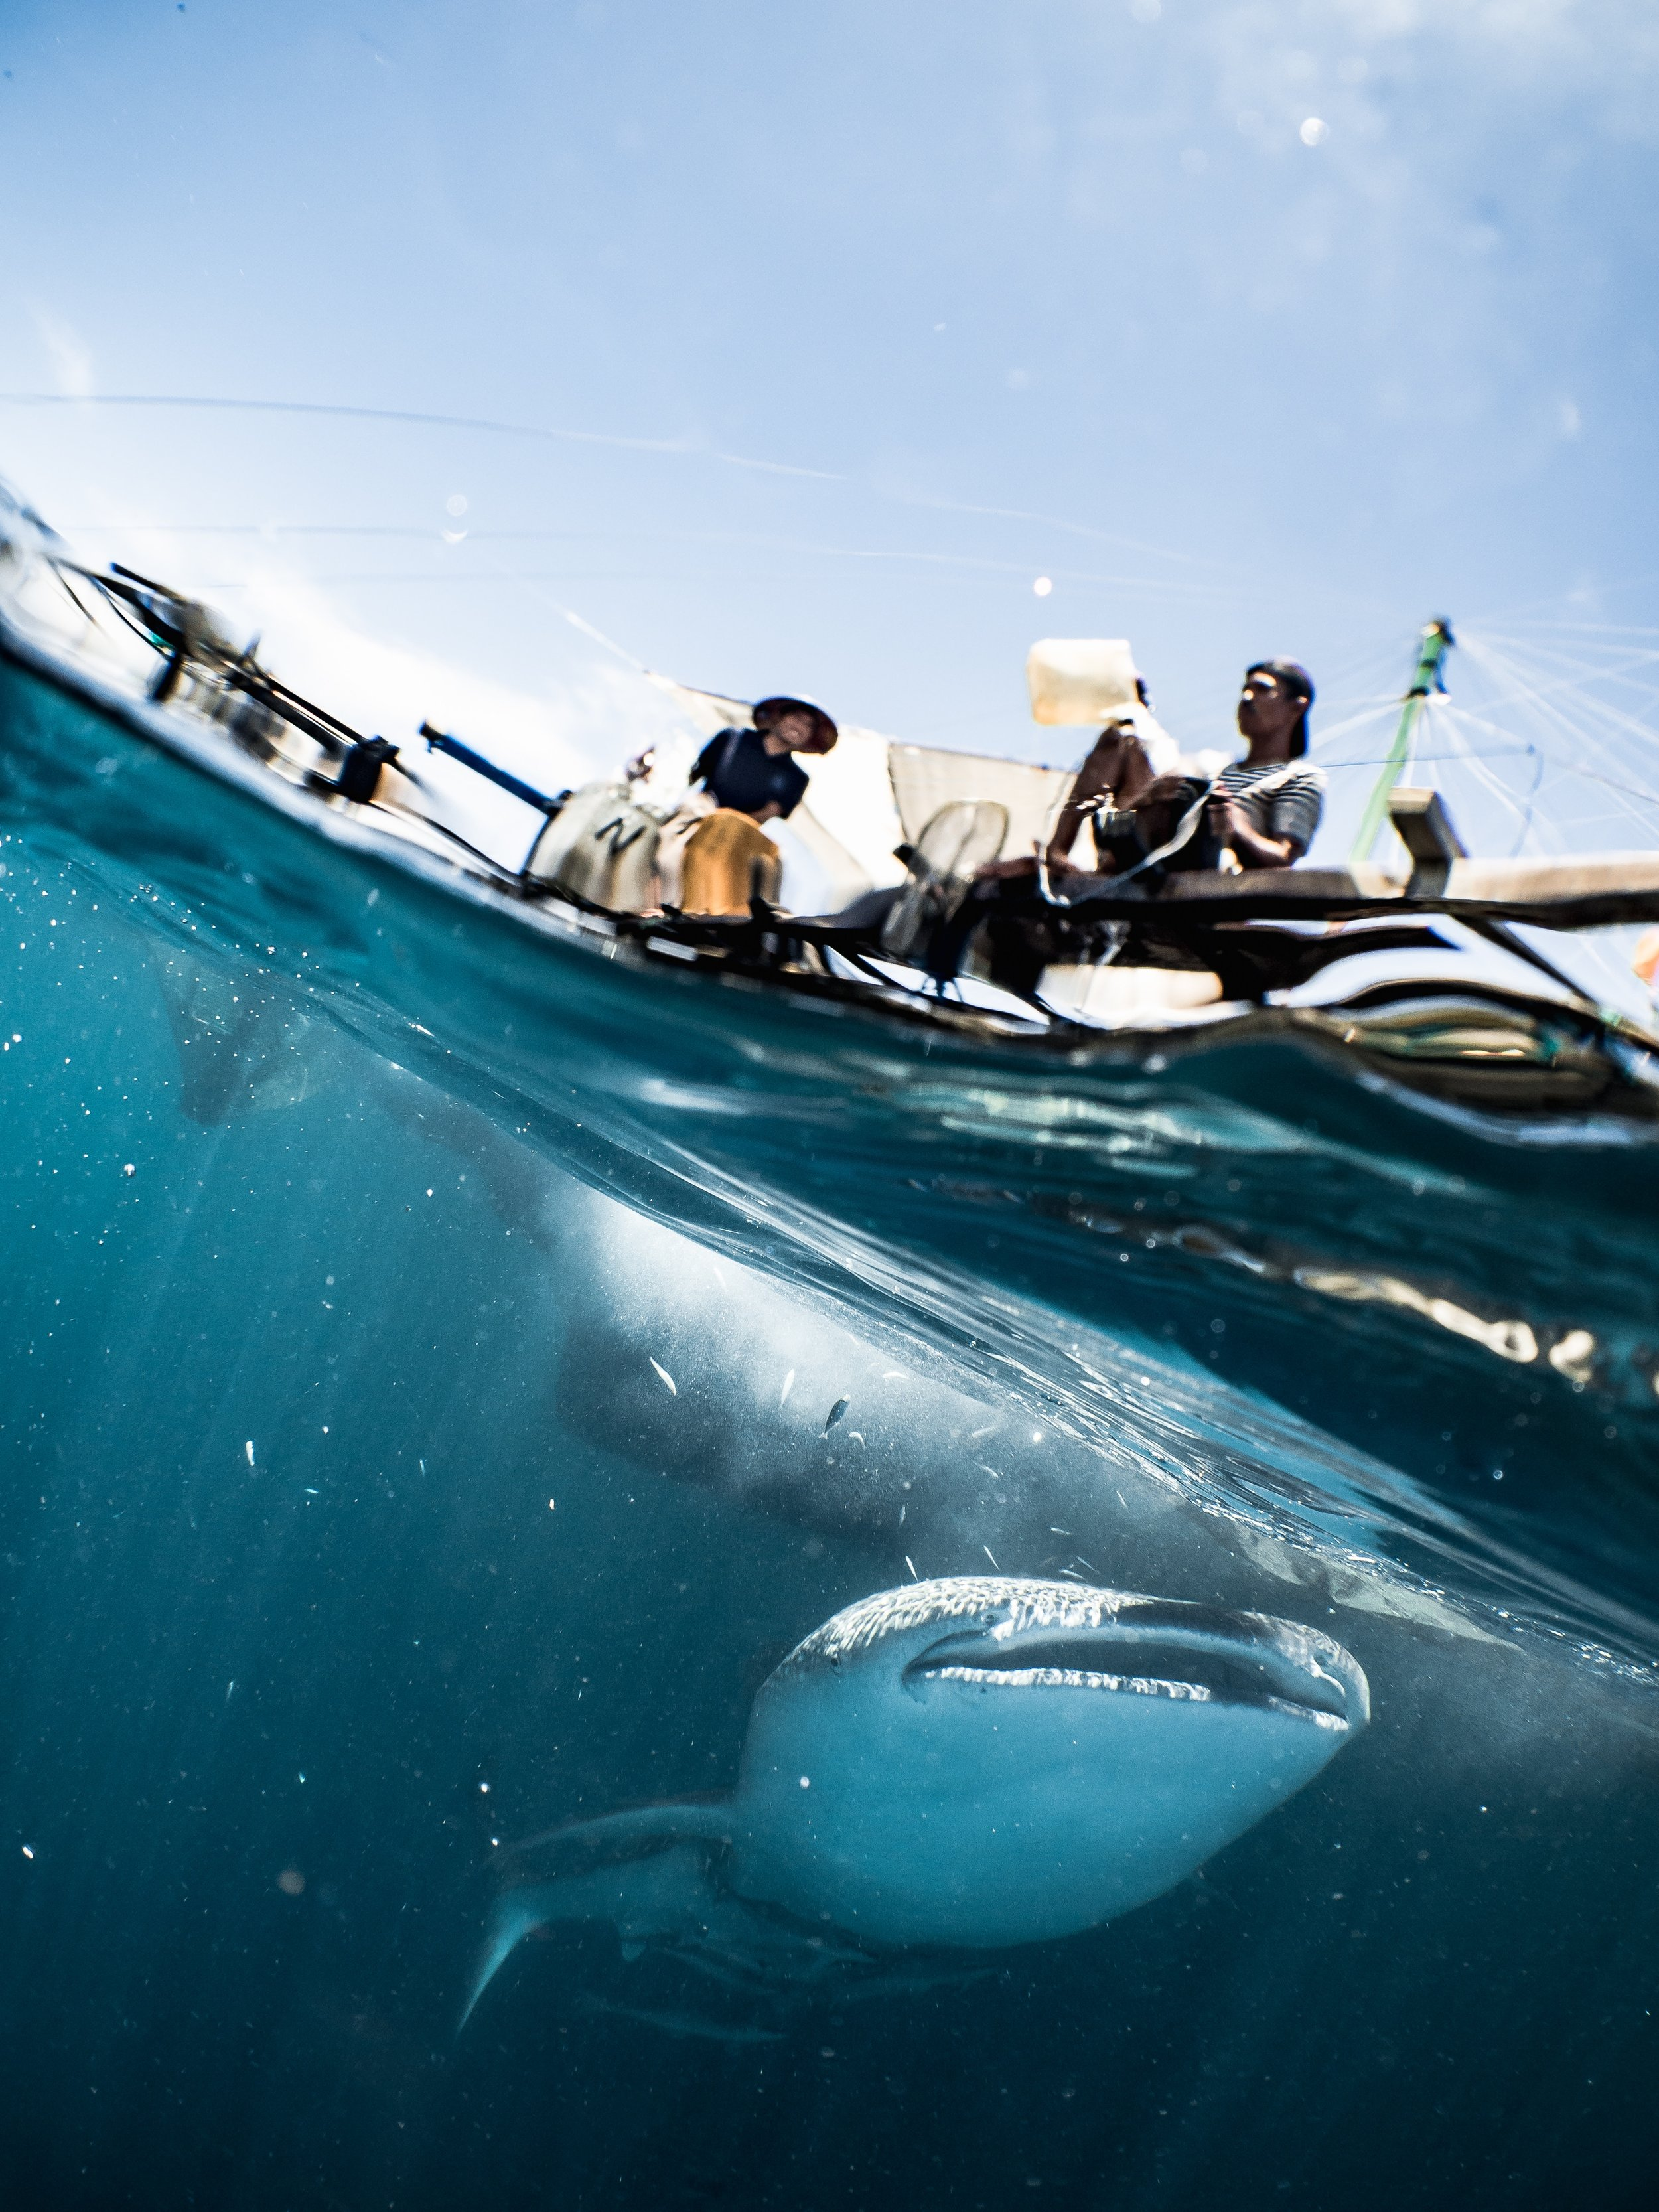 Shark cage diving, specifically with great whites, comes with a host of problems for shark populations. Find out more on Green Travel Suitcase's blog  here .